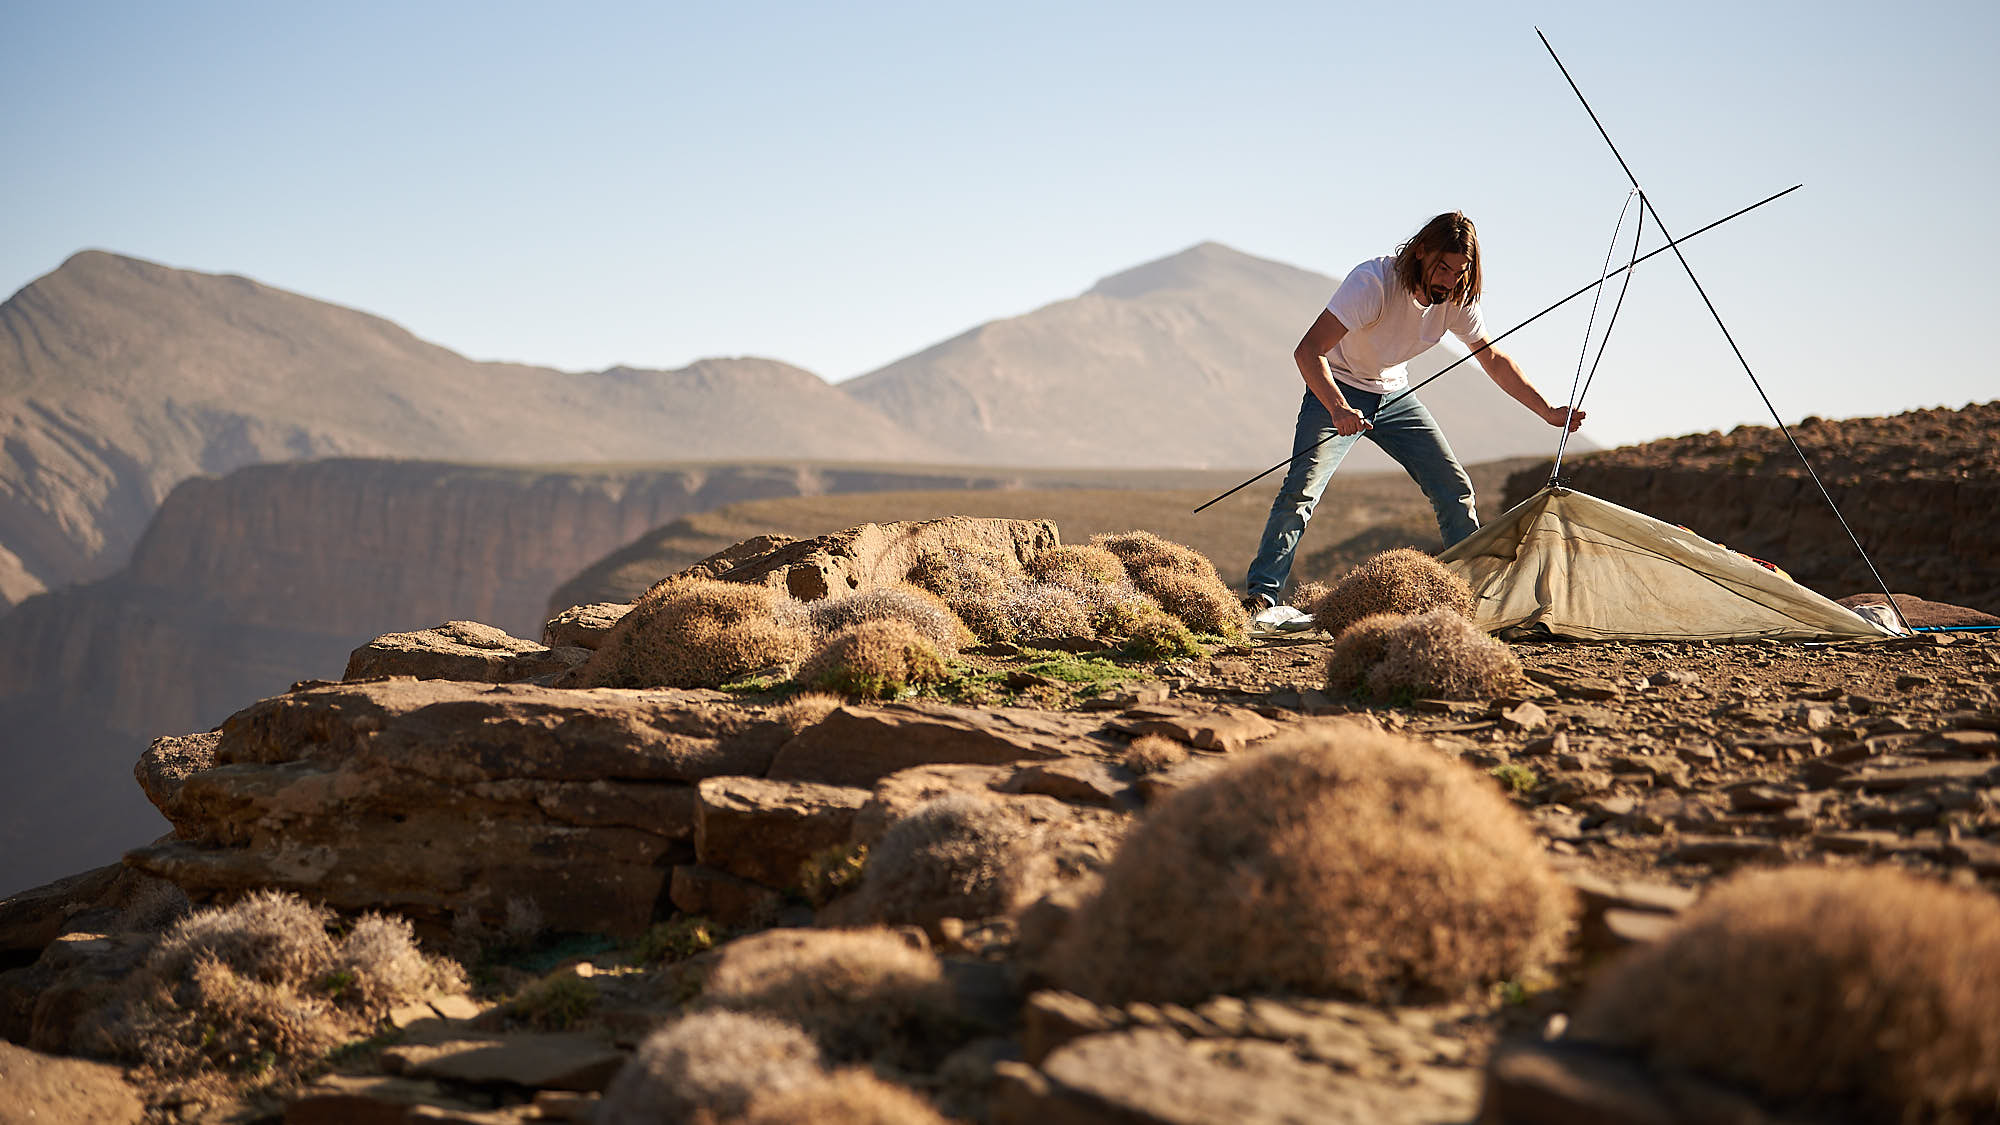 Hiker pitching a tent in Morocco's High Atlas mountain ridge